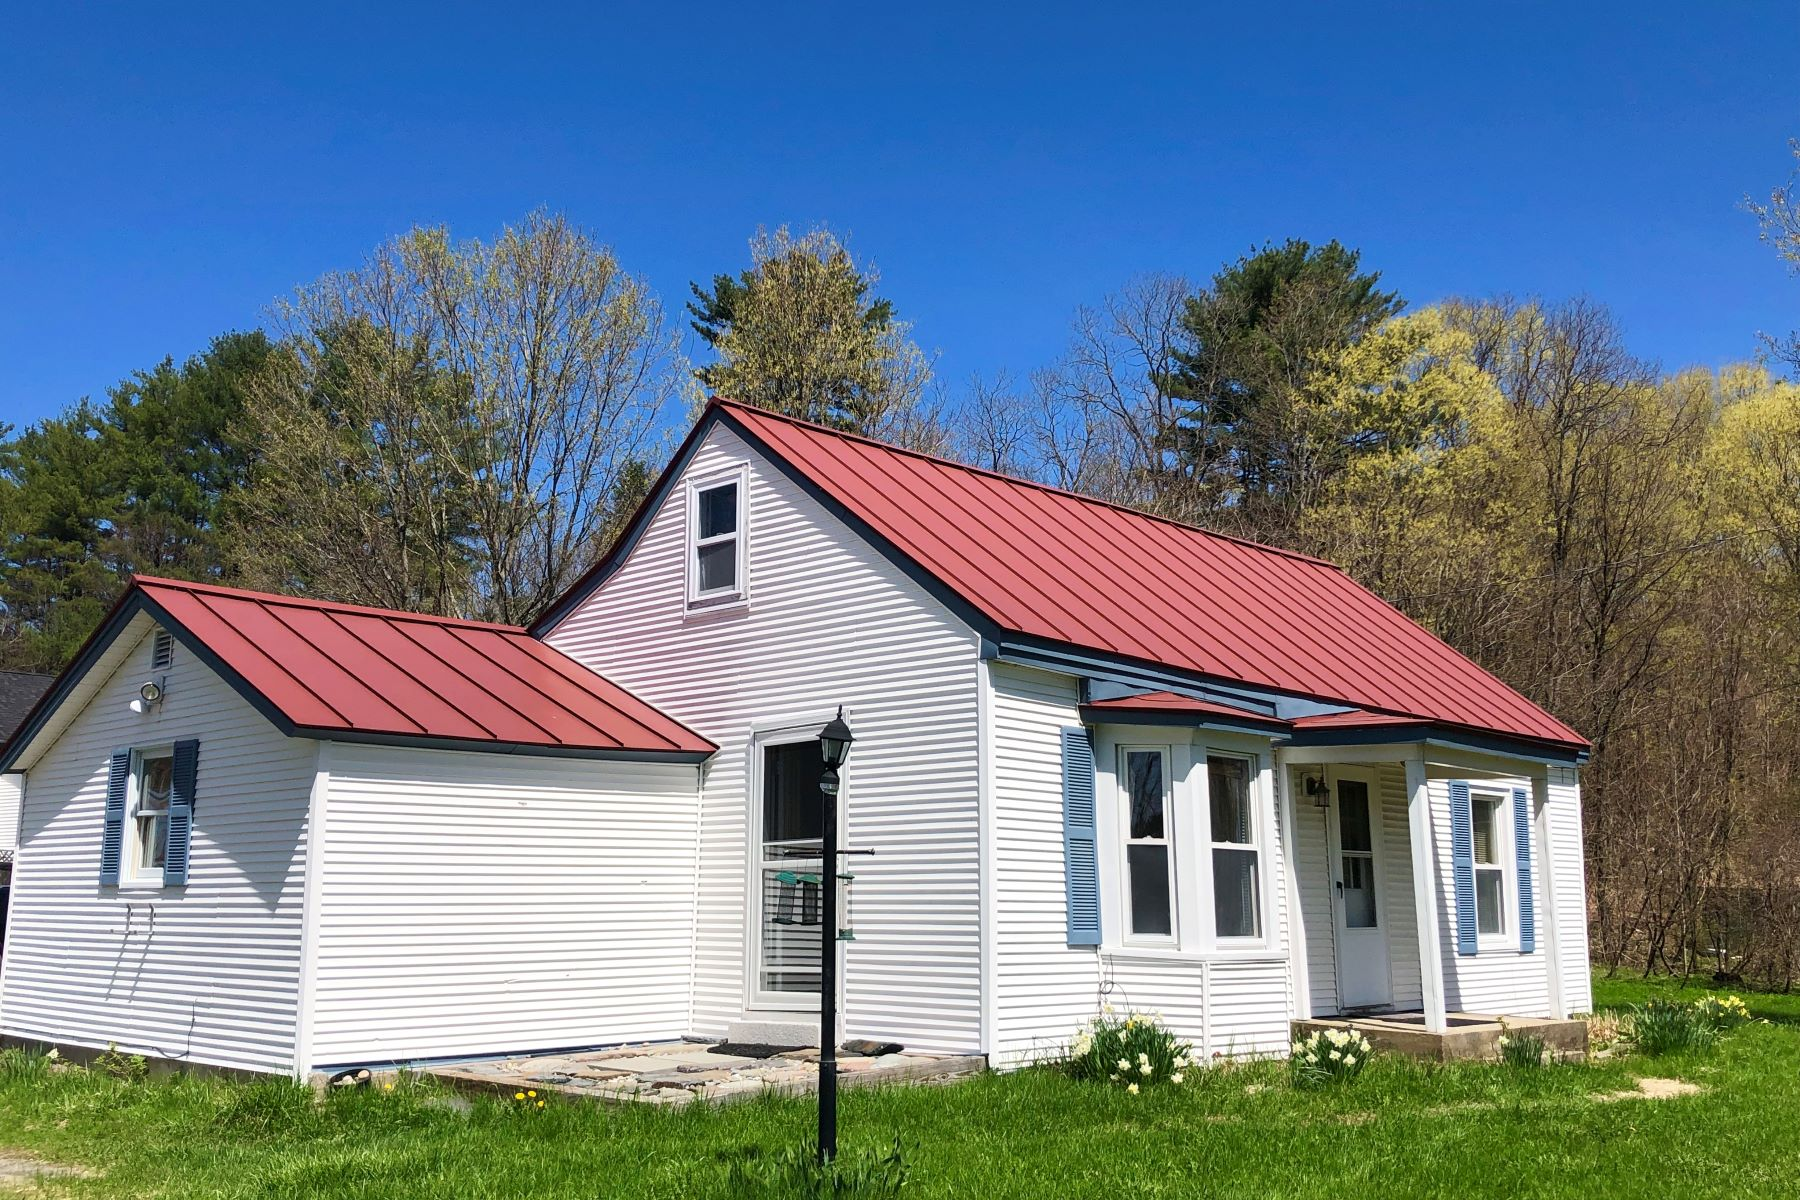 Single Family Homes for Sale at Two or Three bedroom Cape in Bradford 395 High St Bradford, Vermont 05033 United States